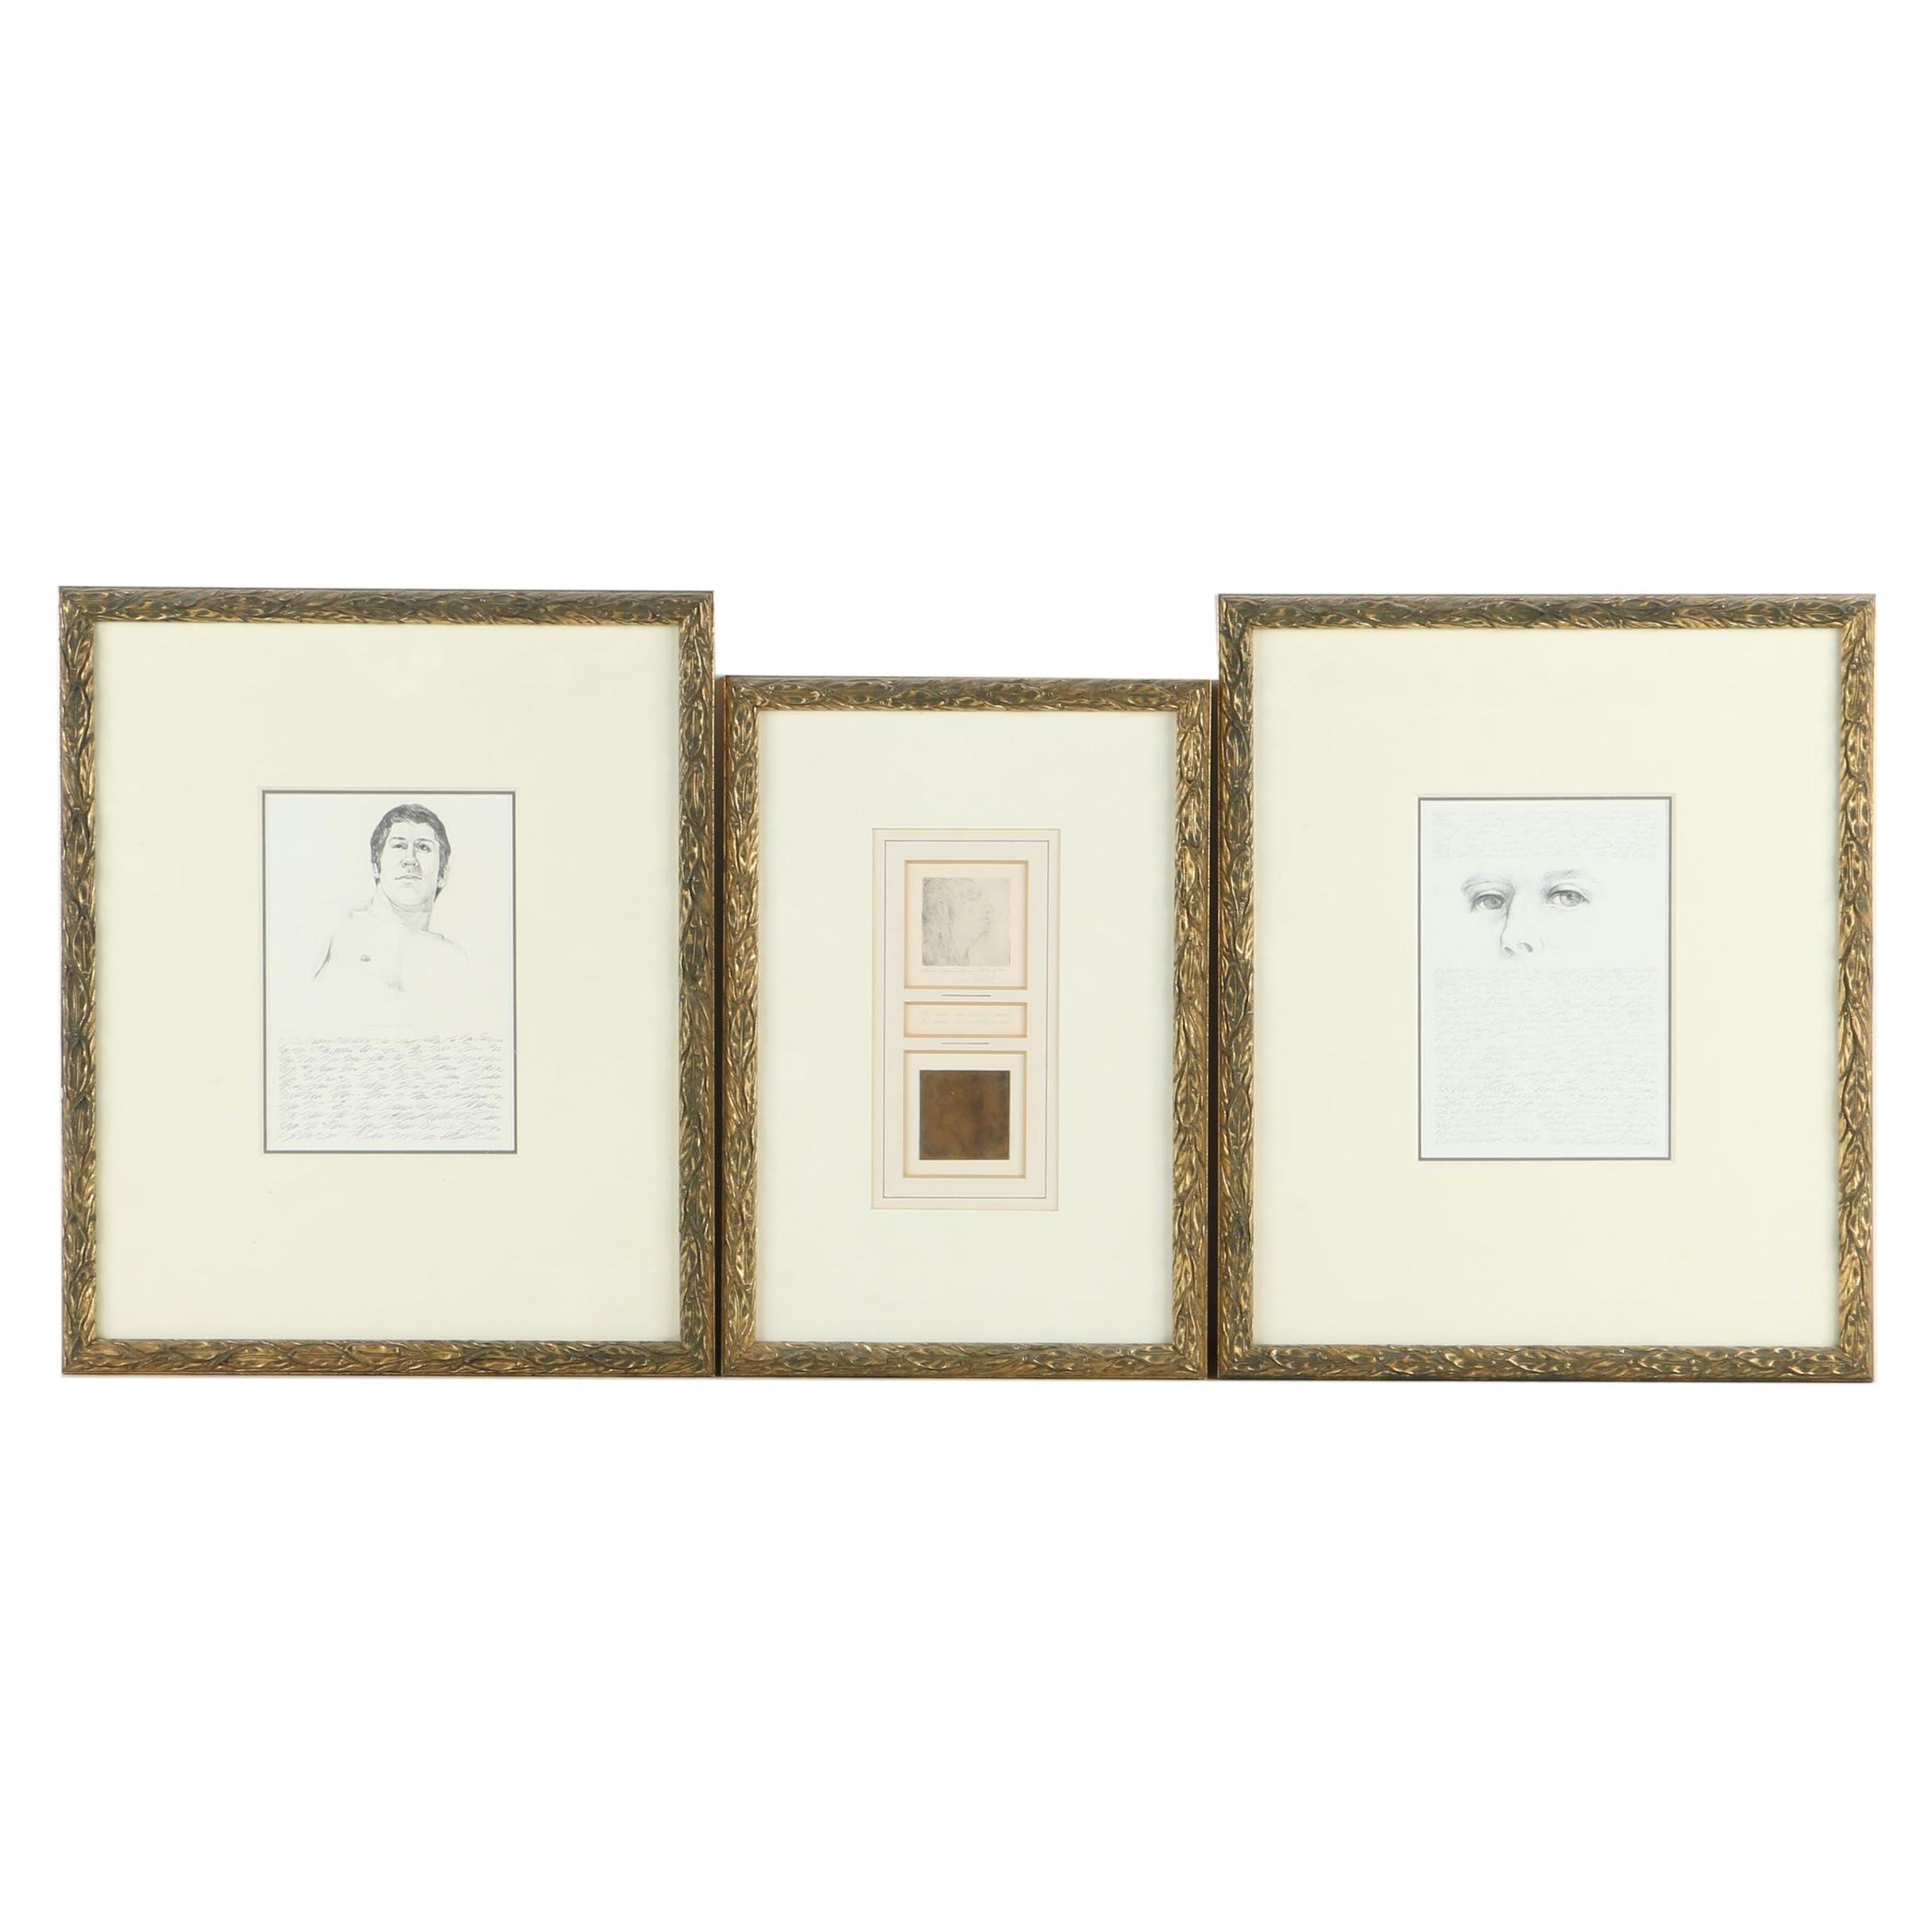 David Eugene Henry Artist Proof Etching on Paper and Graphite Drawings